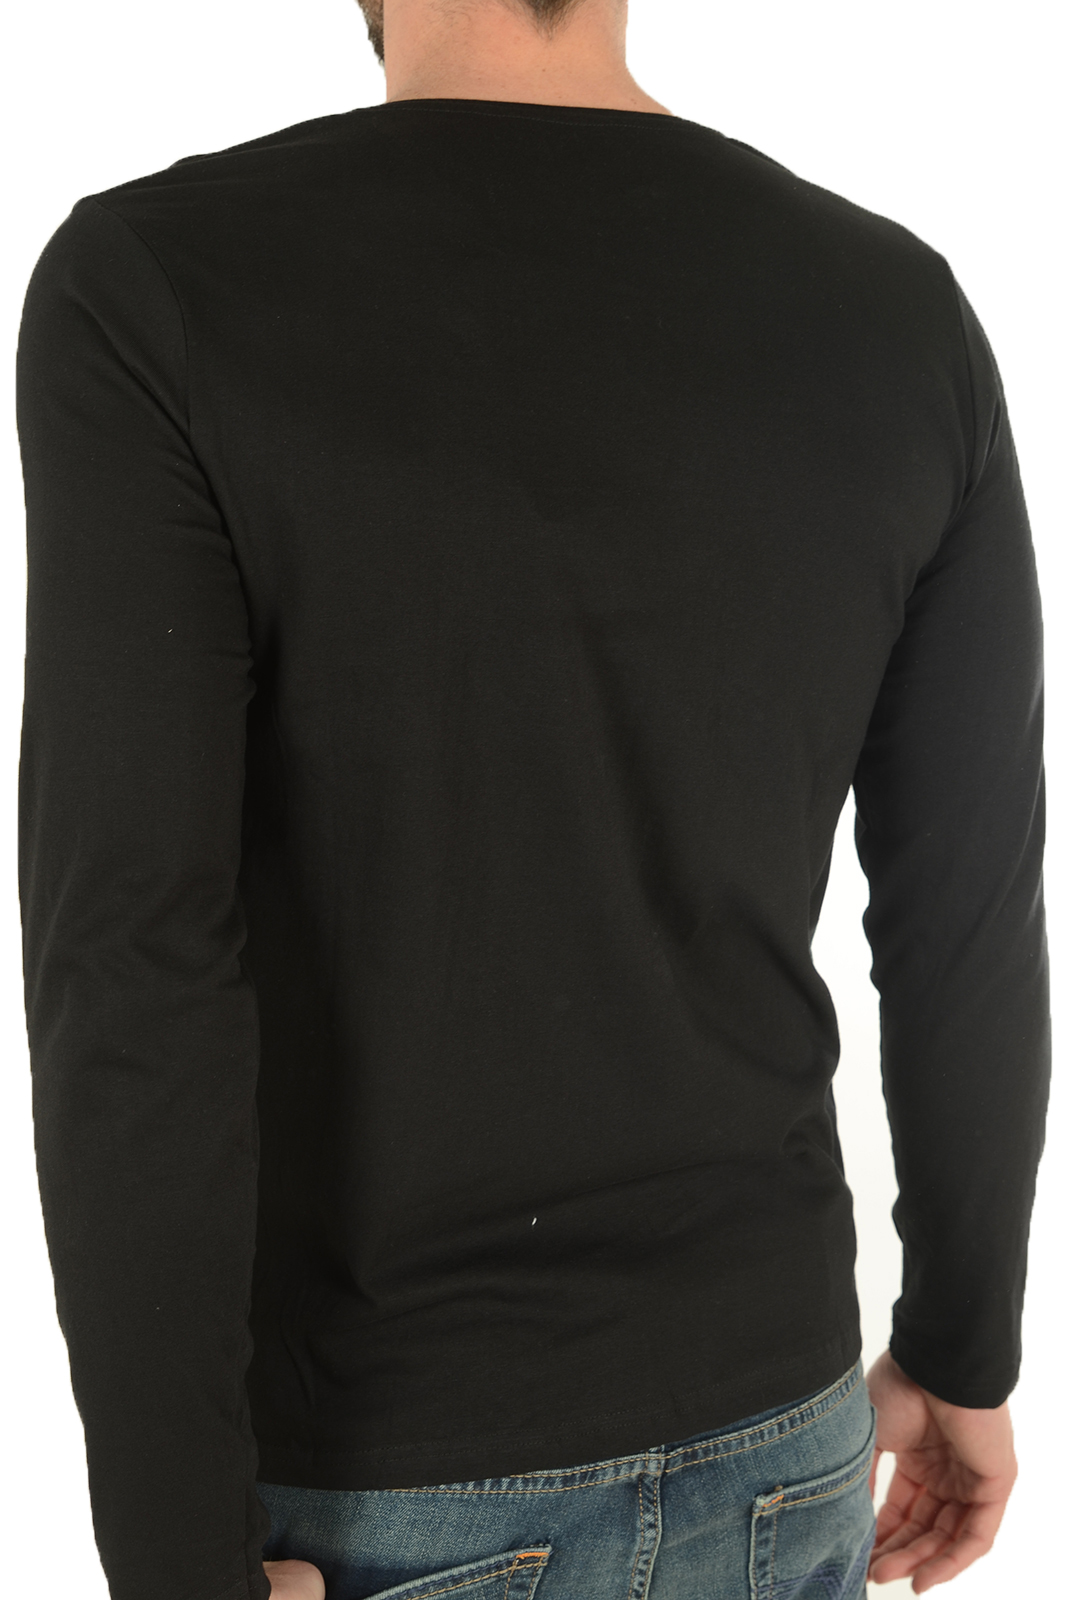 T-S manches longues  Biaggio jeans LAkANIL BLACK